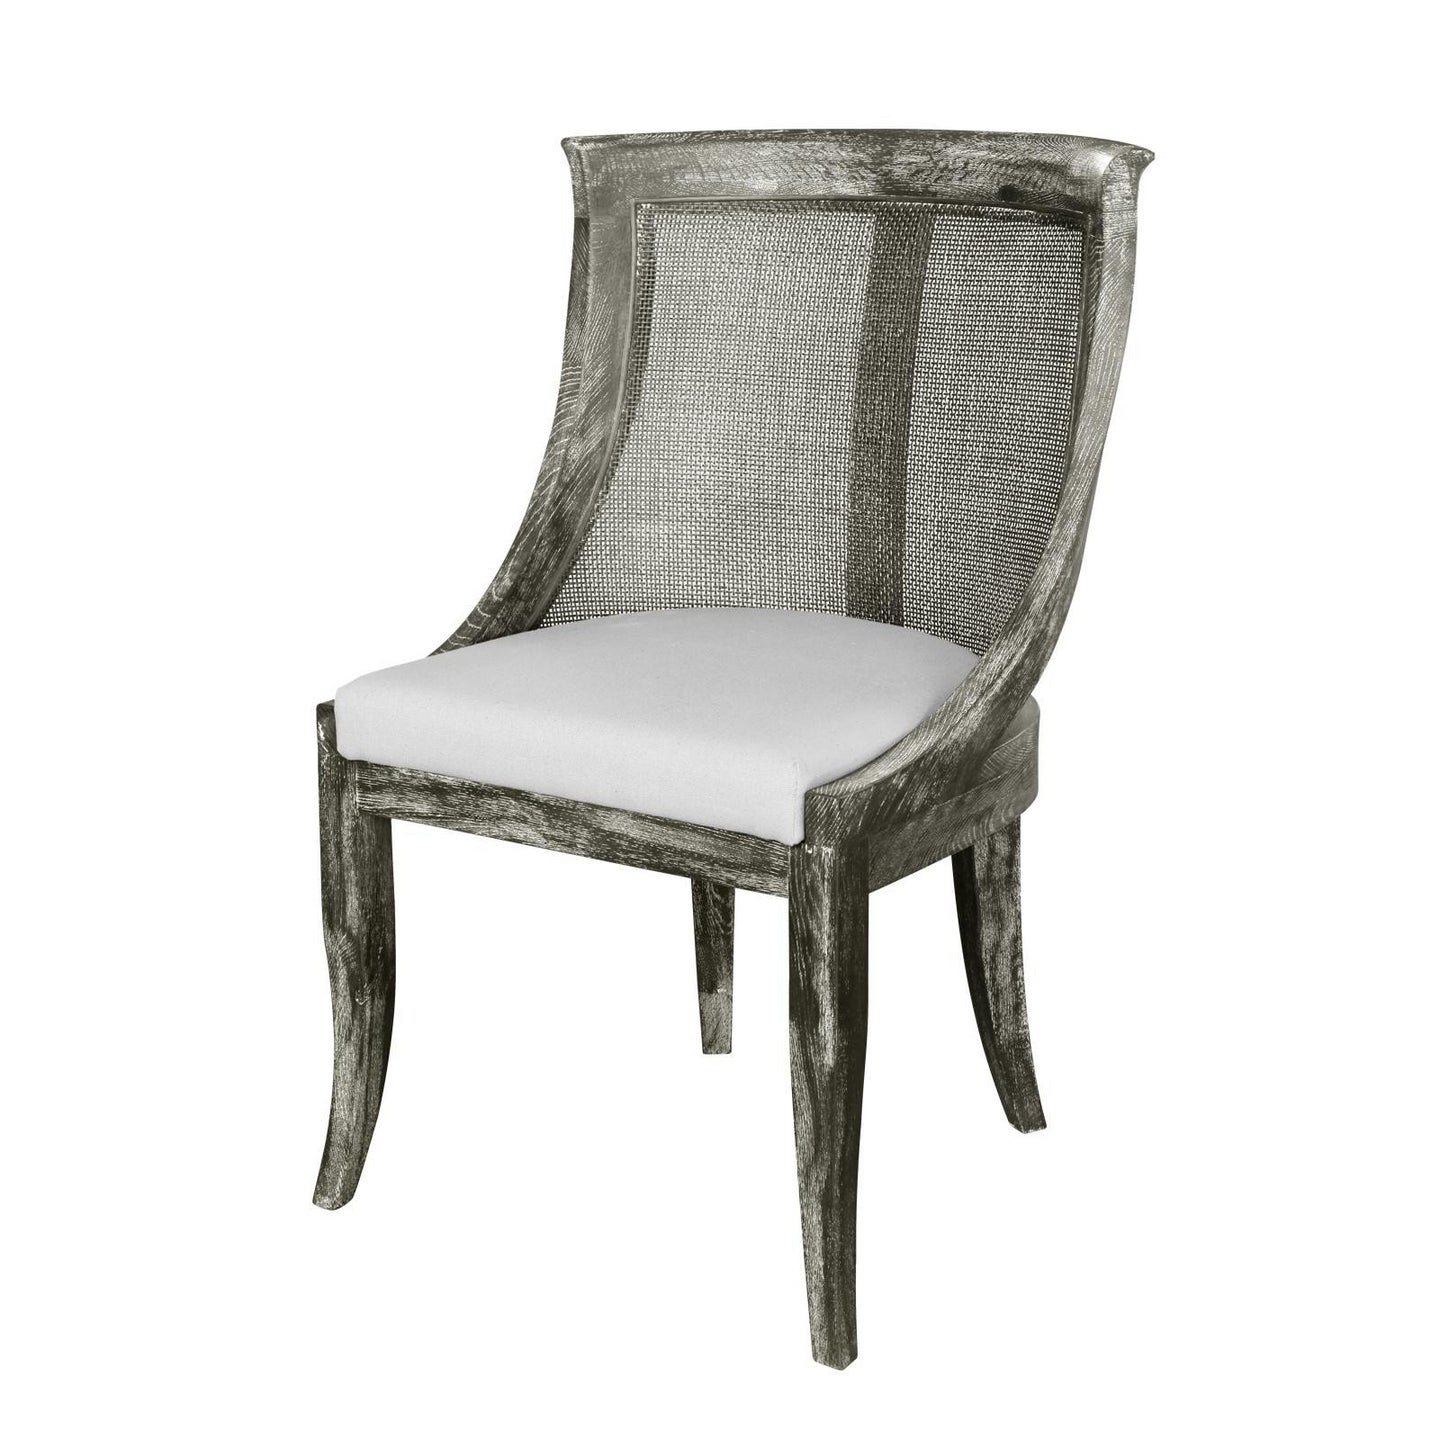 Bungalow 5 Monaco Arm Chair Gray MON 555 96 Chair, Chairs, Office